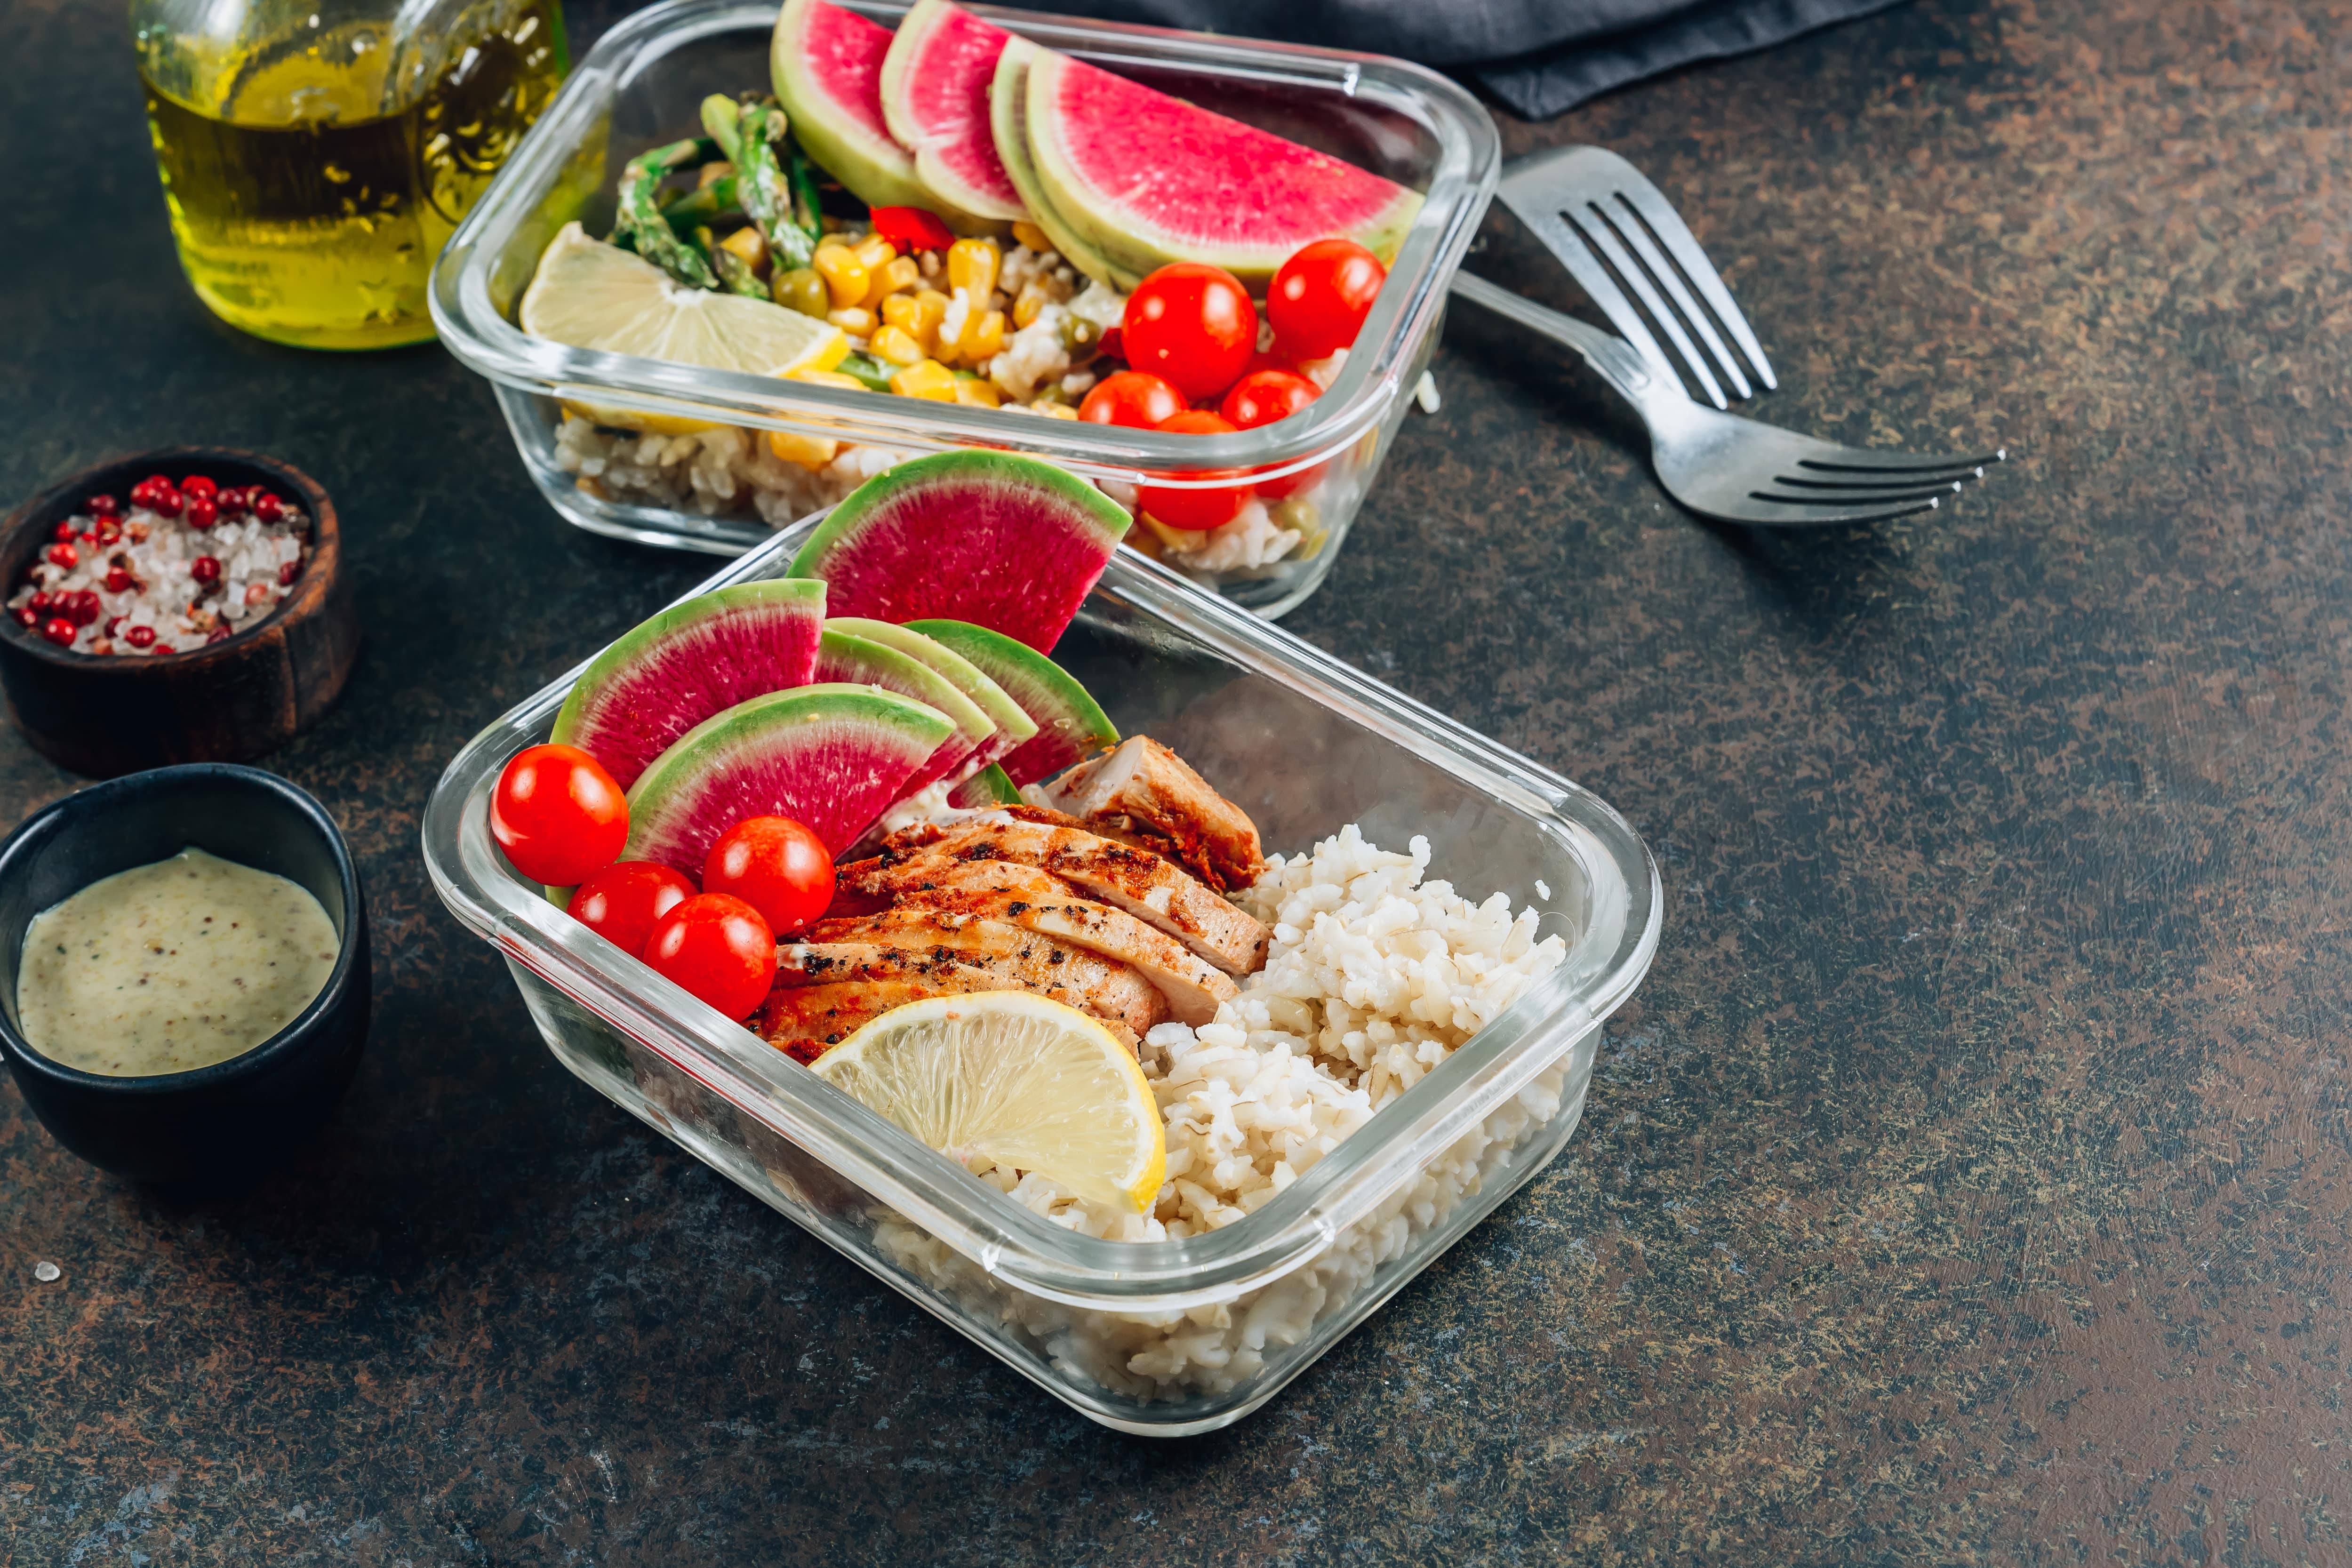 How will Meal Kits, Meal Prep benefit Restaurants?